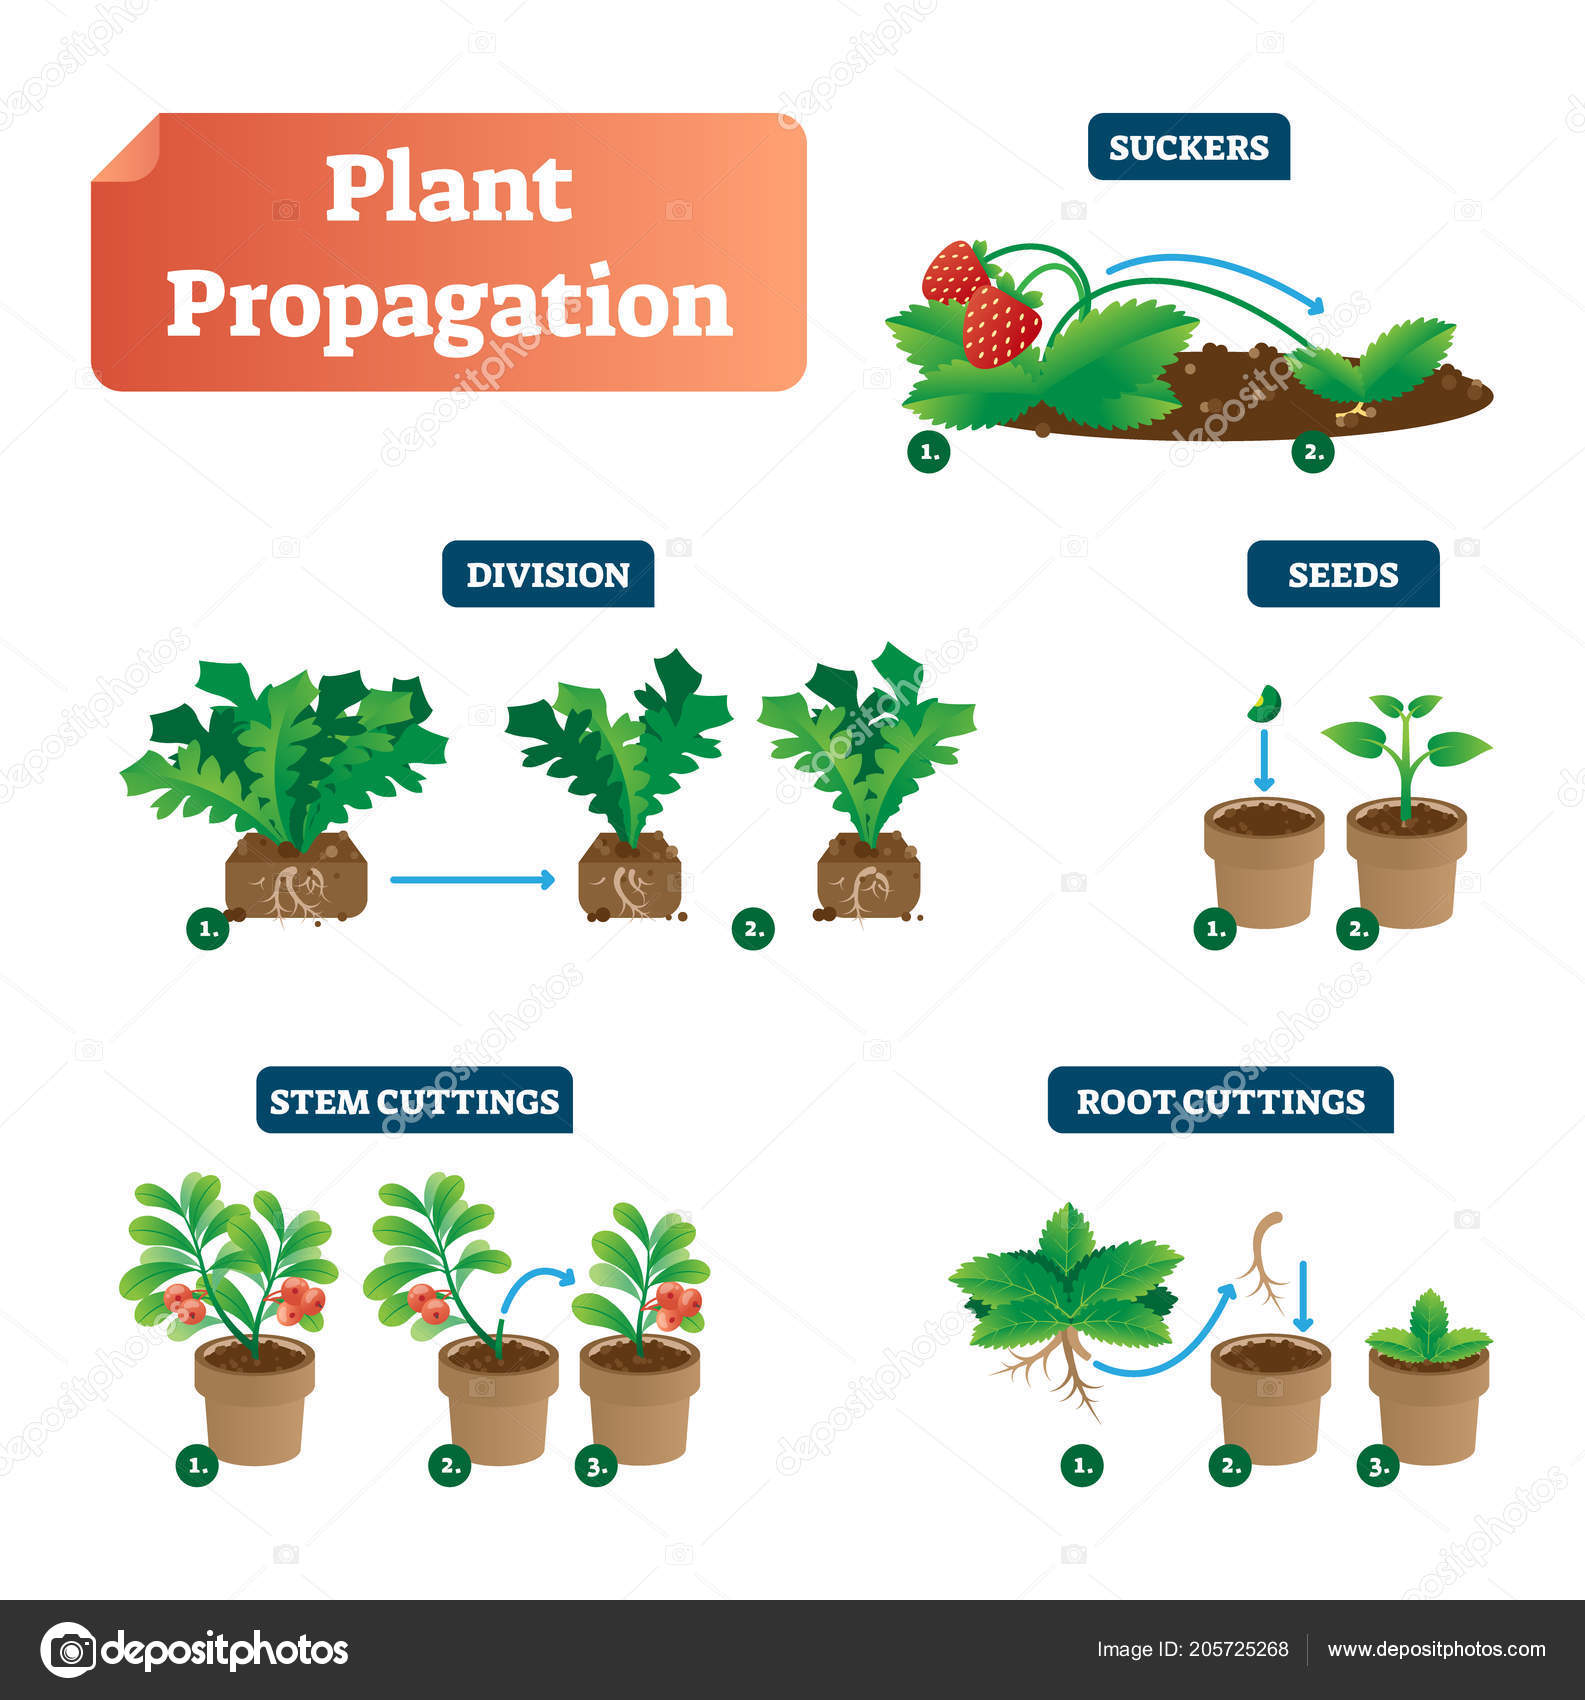 Plant propagation vector illustration diagram scheme with labels on plant propagation vector illustration diagram scheme with labels on suckers division seeds ccuart Image collections